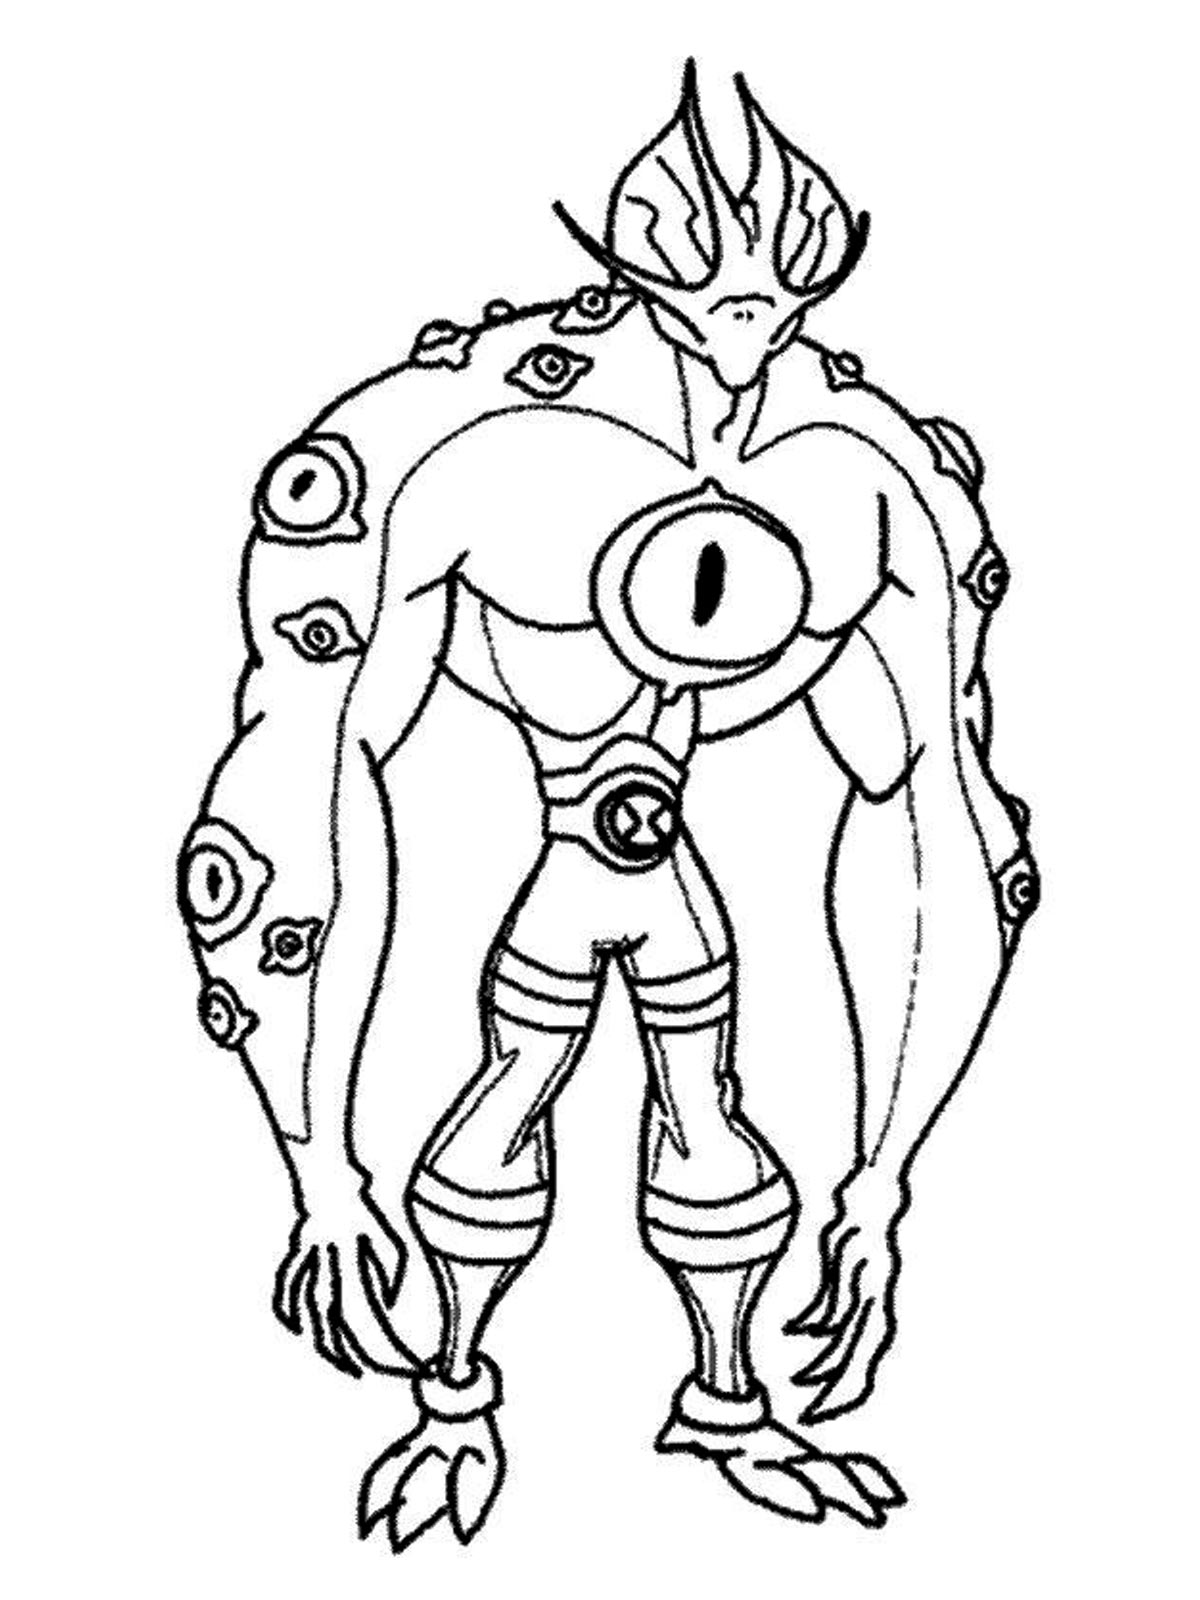 Ben 10 Printable Coloring Book